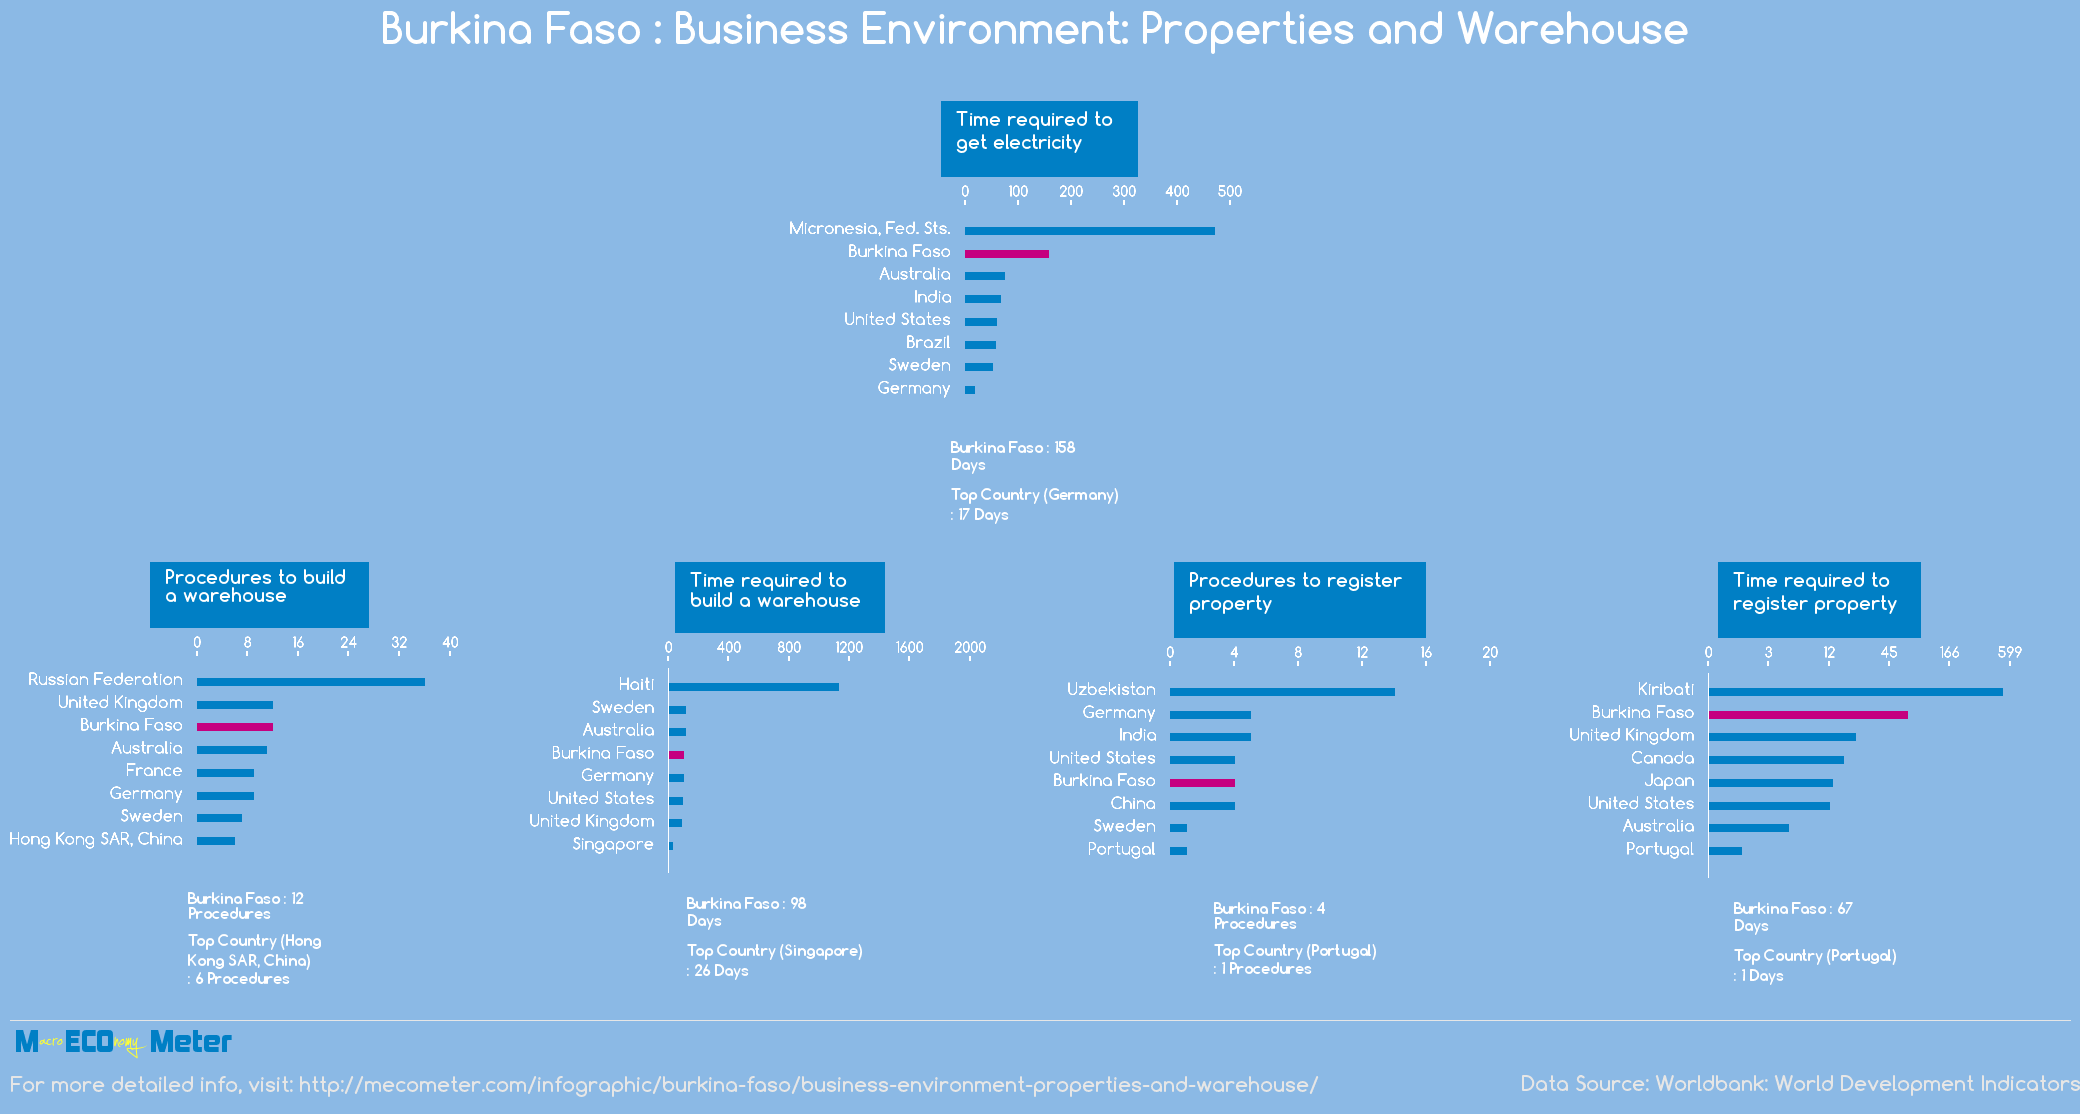 Burkina Faso : Business Environment: Properties and Warehouse